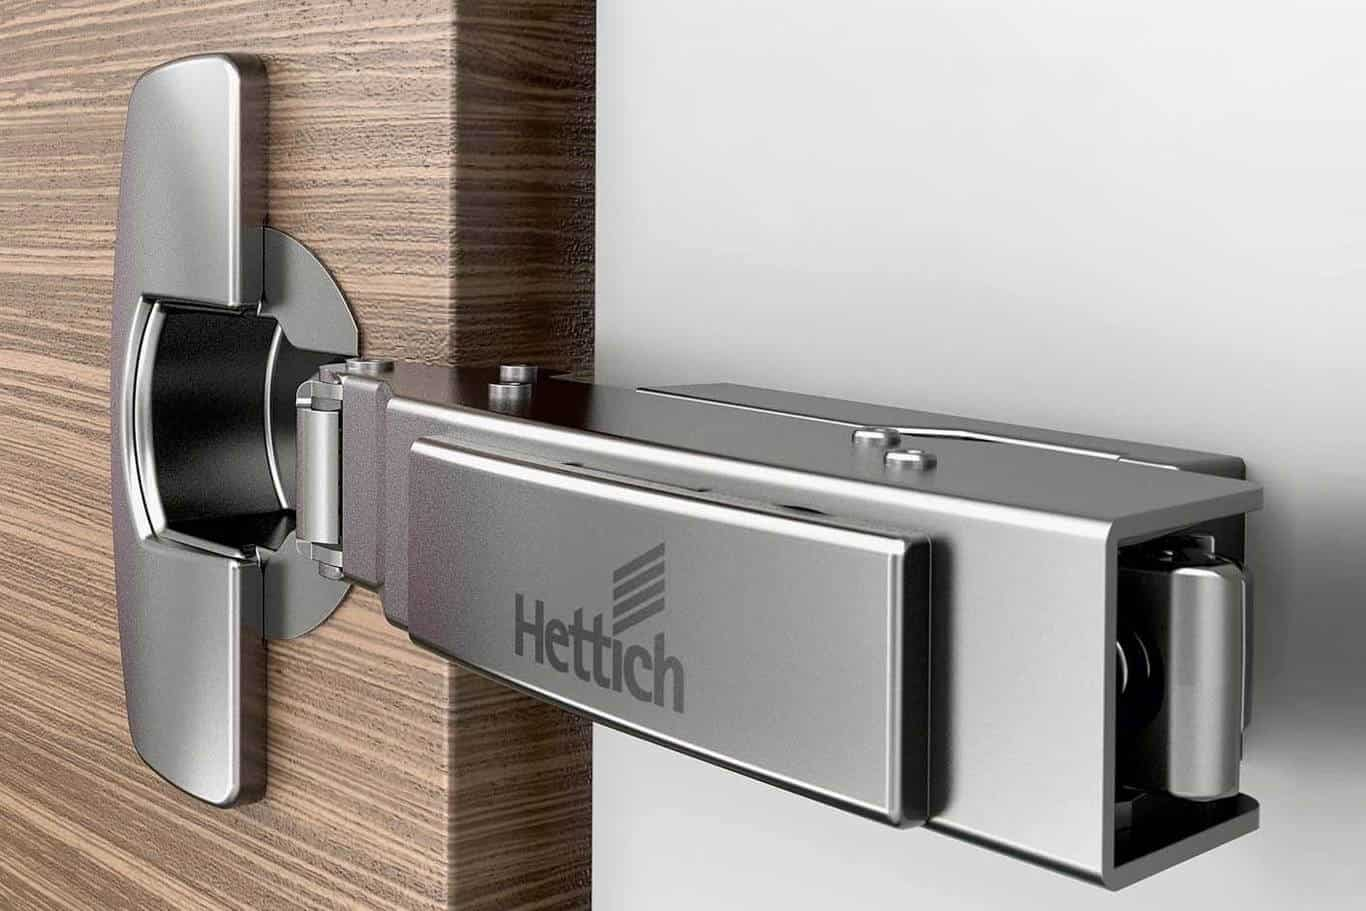 Popular Hinges Brands in China for Your Kitchen & Furniture: Review